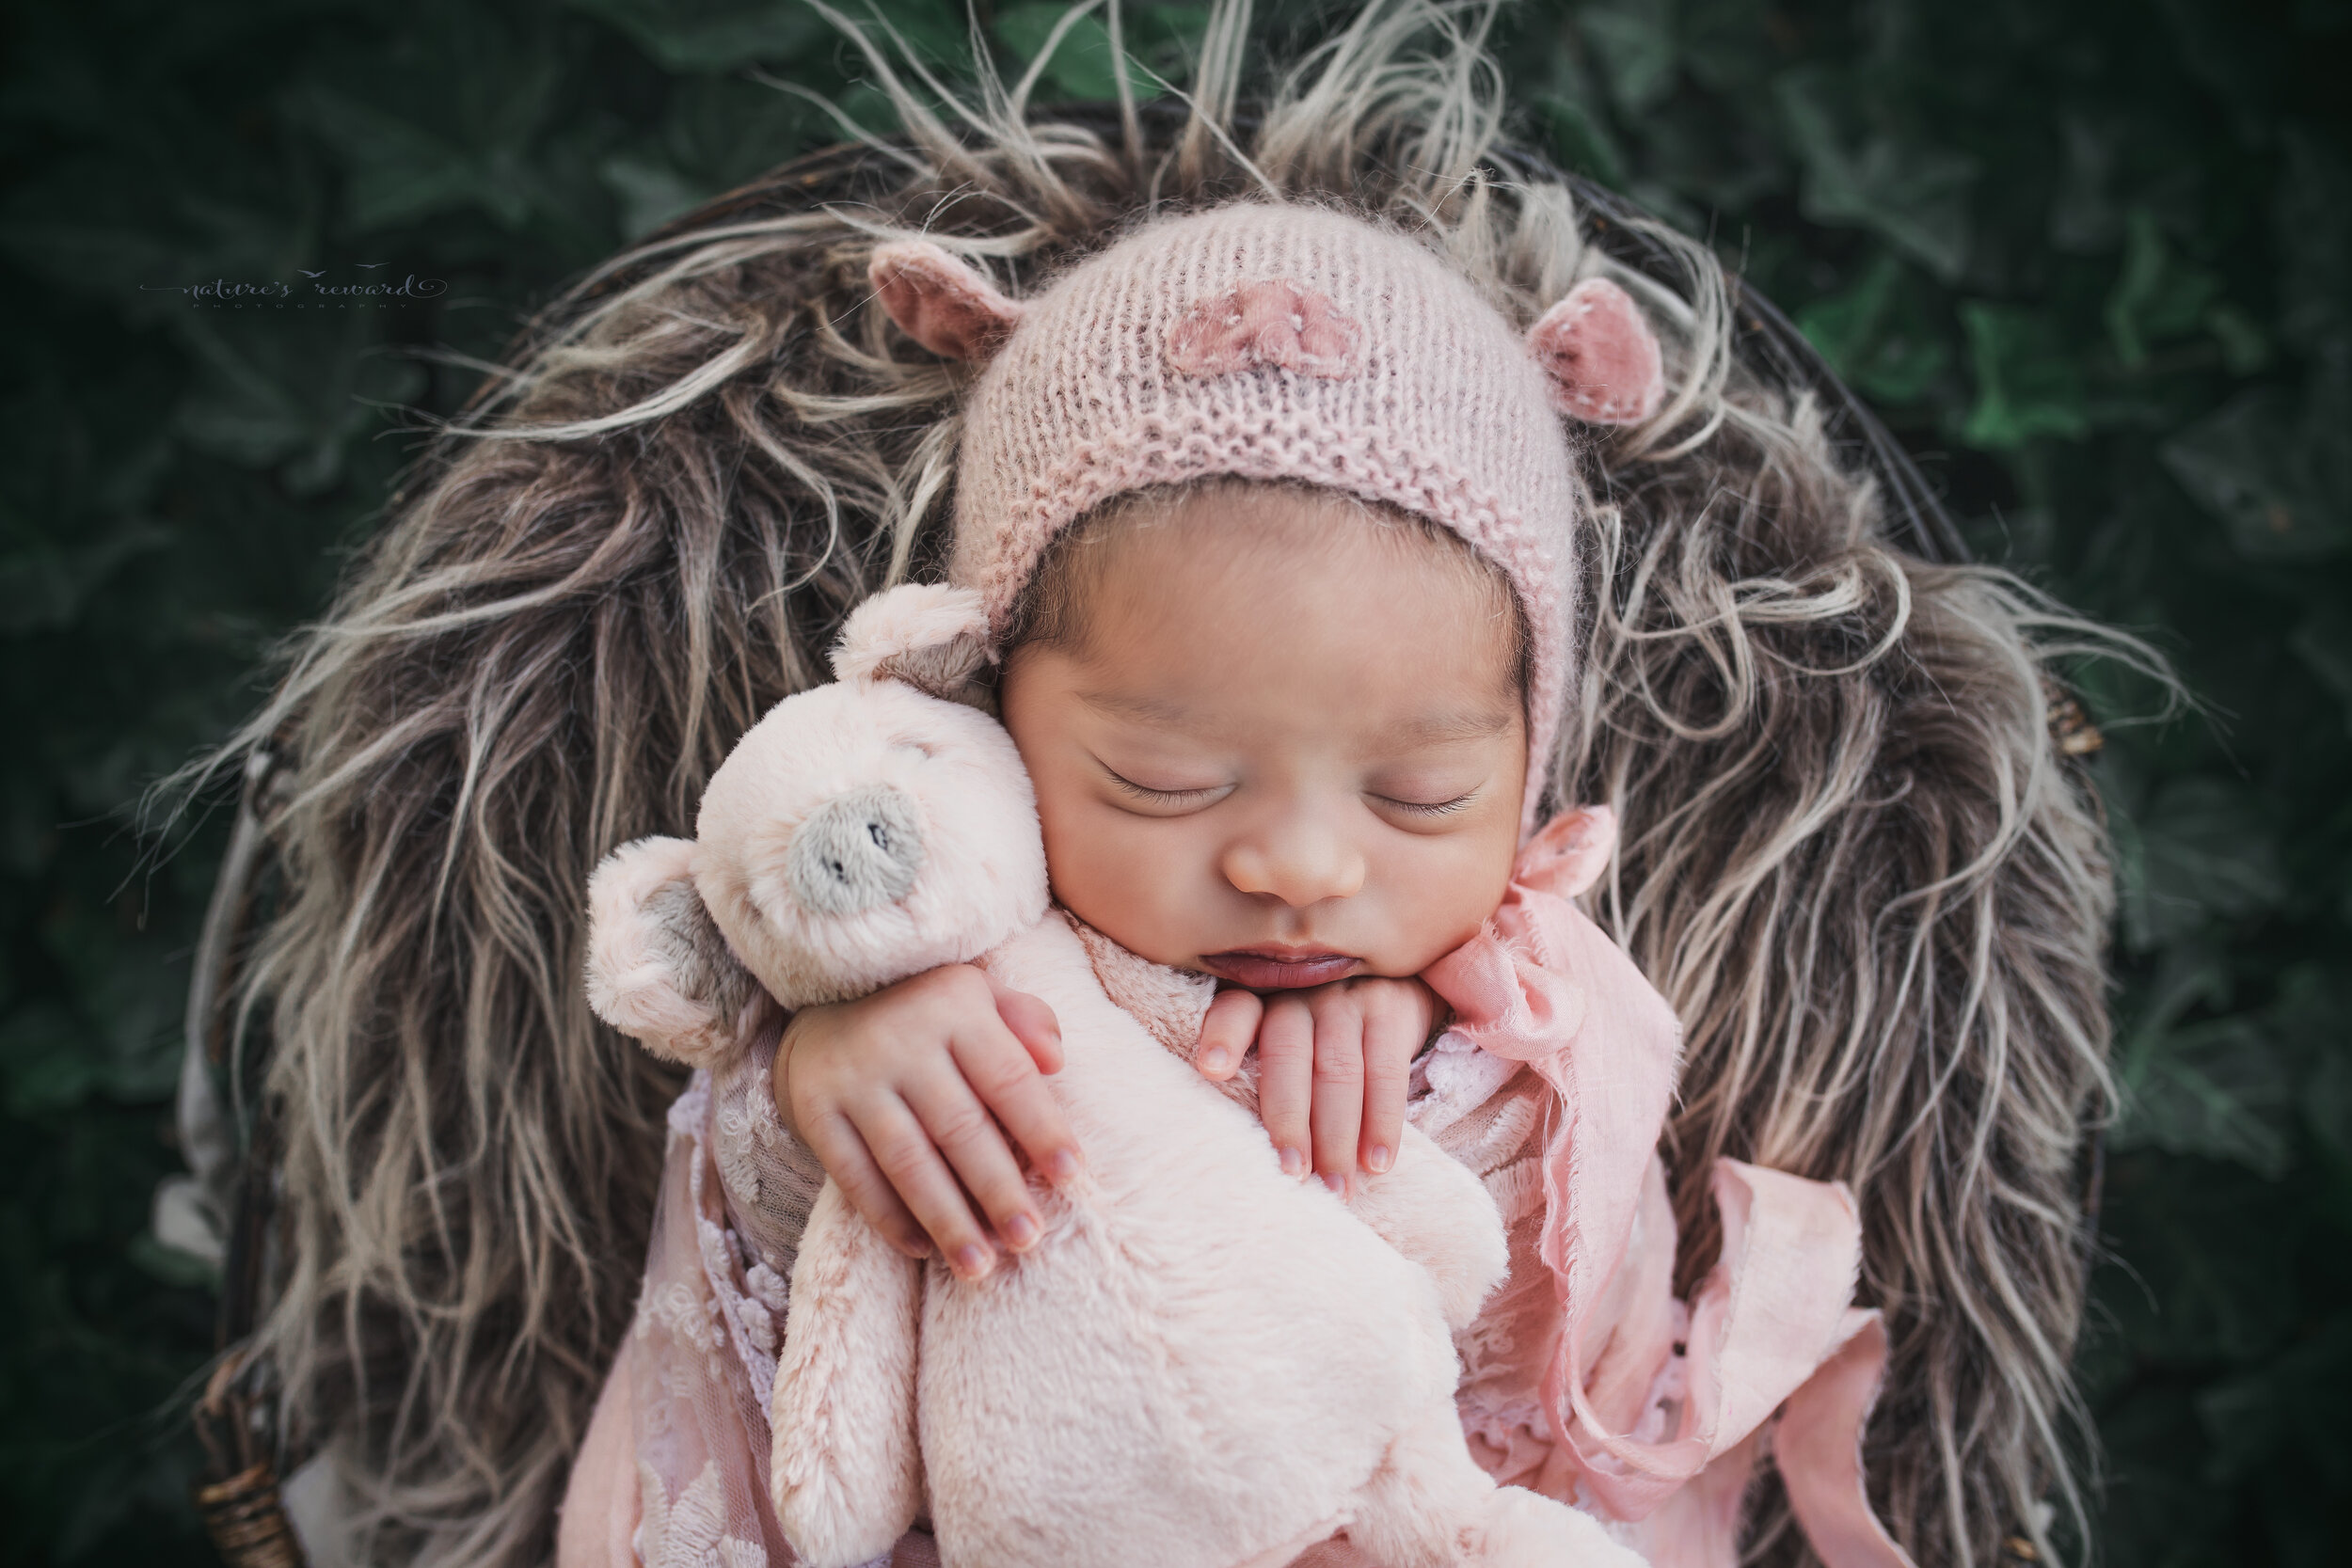 Sweet baby girl swaddled in pink lace wearing a pig bonnet (the year of the pig) in a garden of ivy, a newborn portrait by Nature's Reward Photography